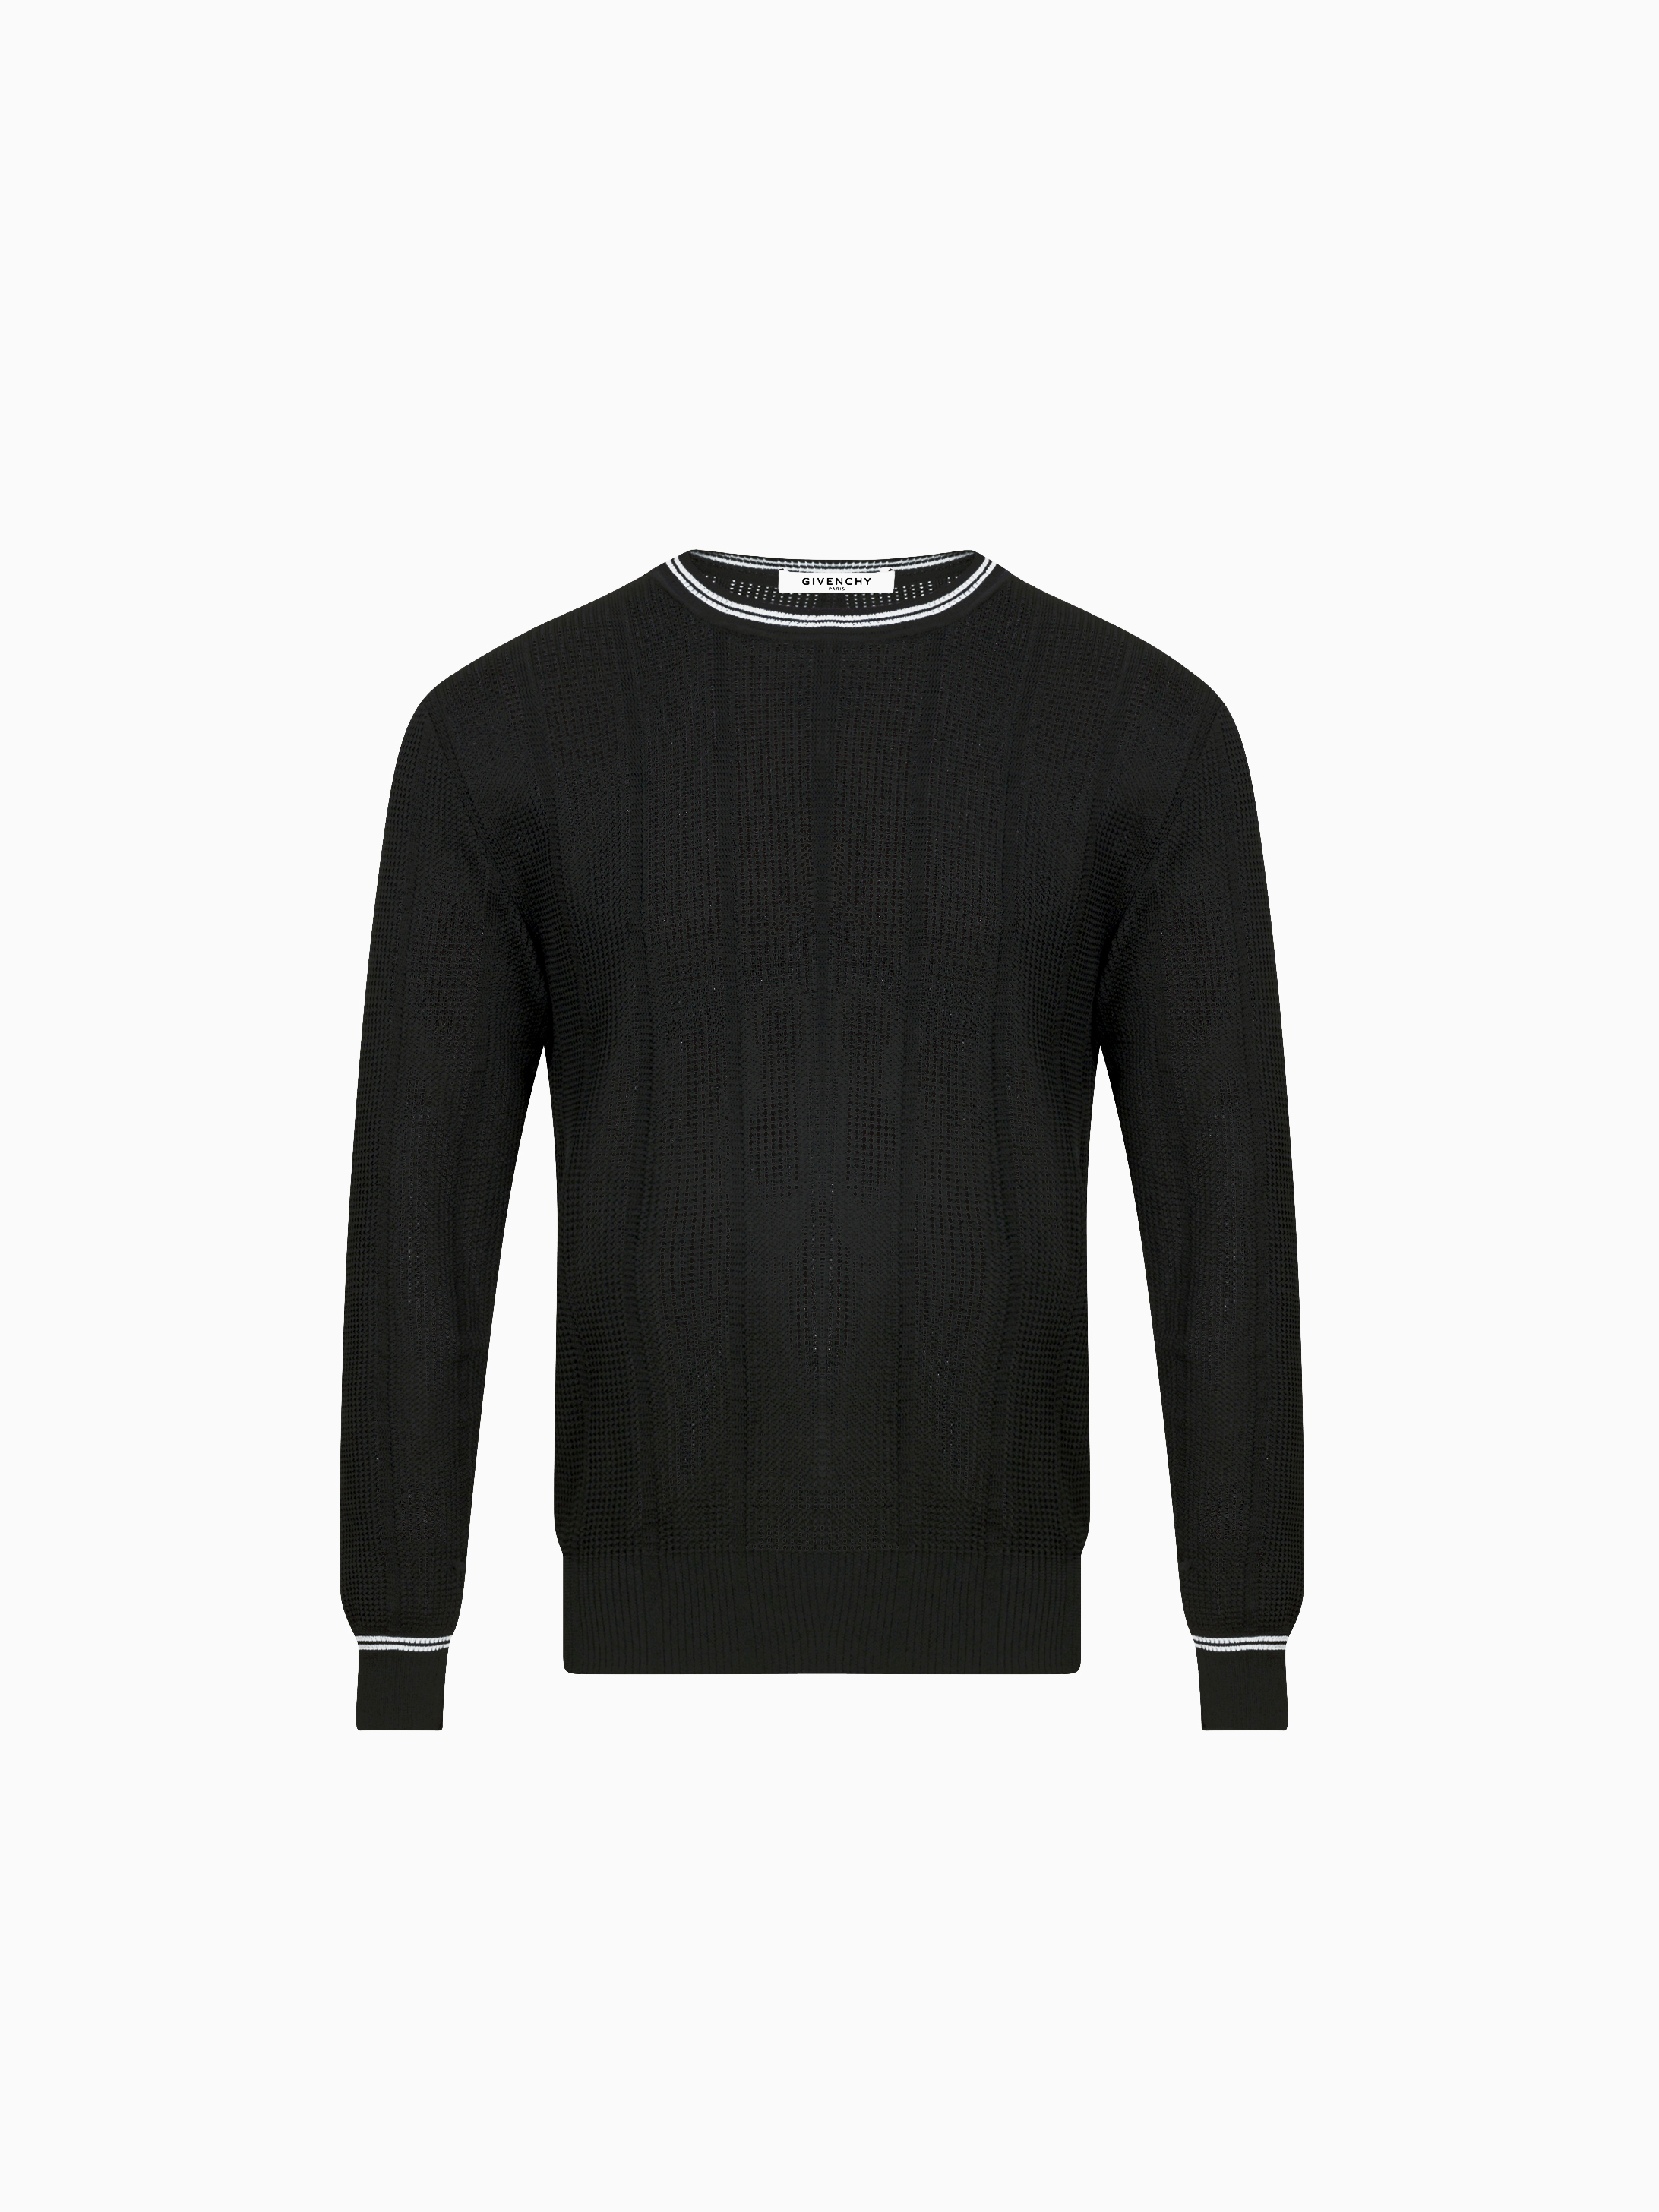 Mesh effect jumper with contrasting details